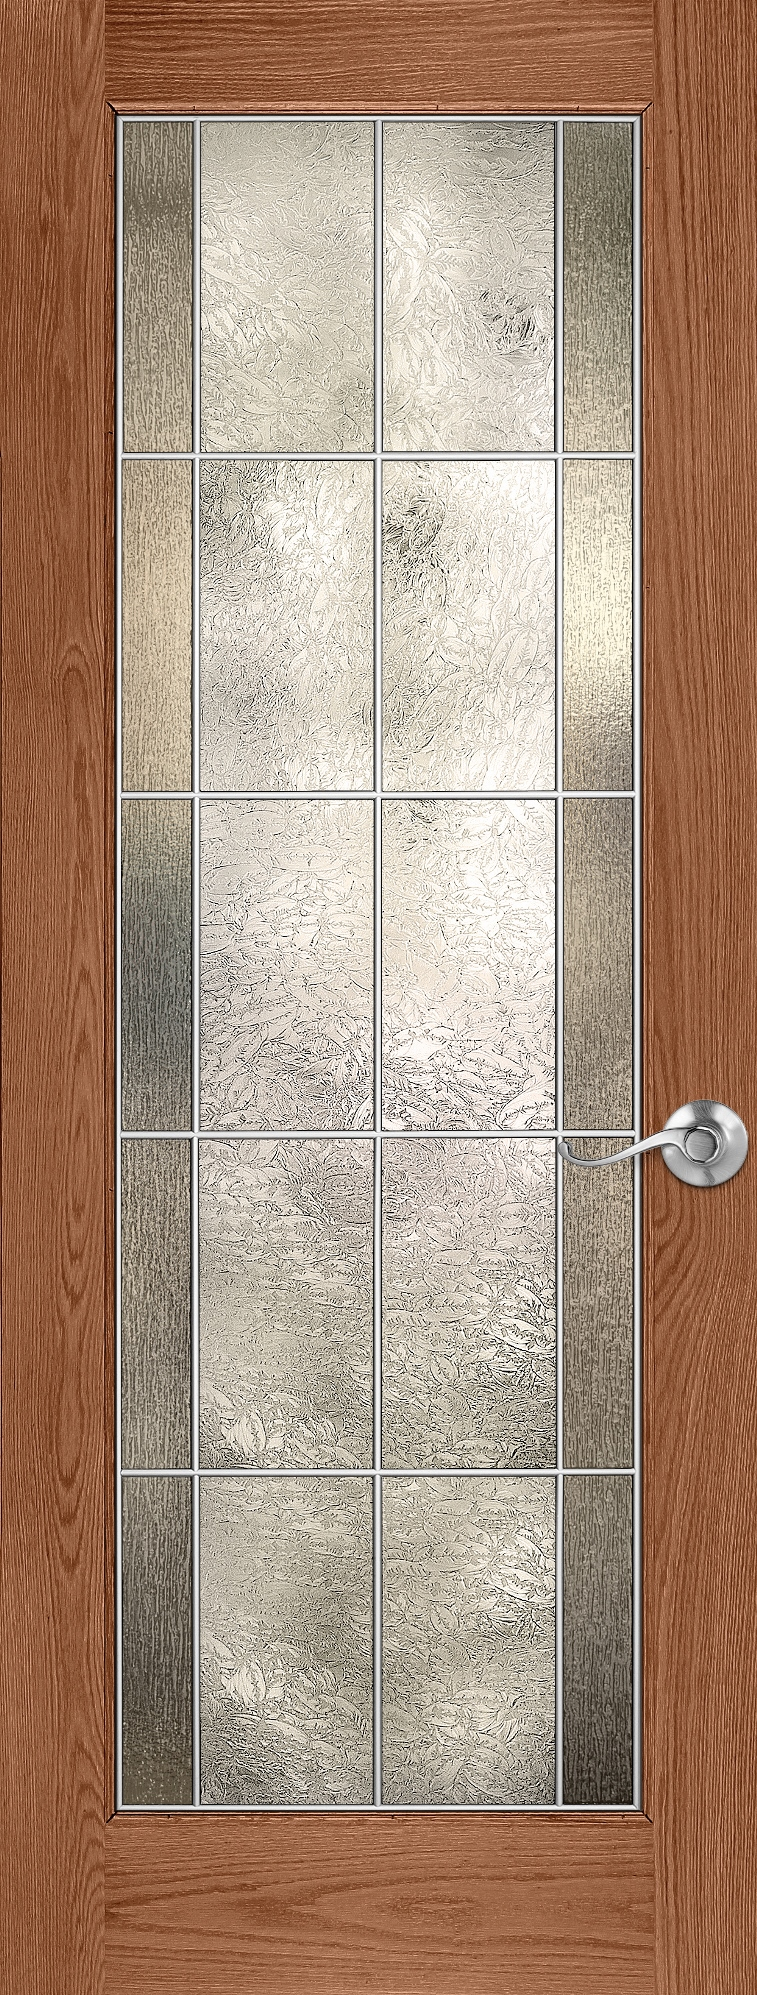 Royale Privacy French Door North Pole Trim Supplies Ltd